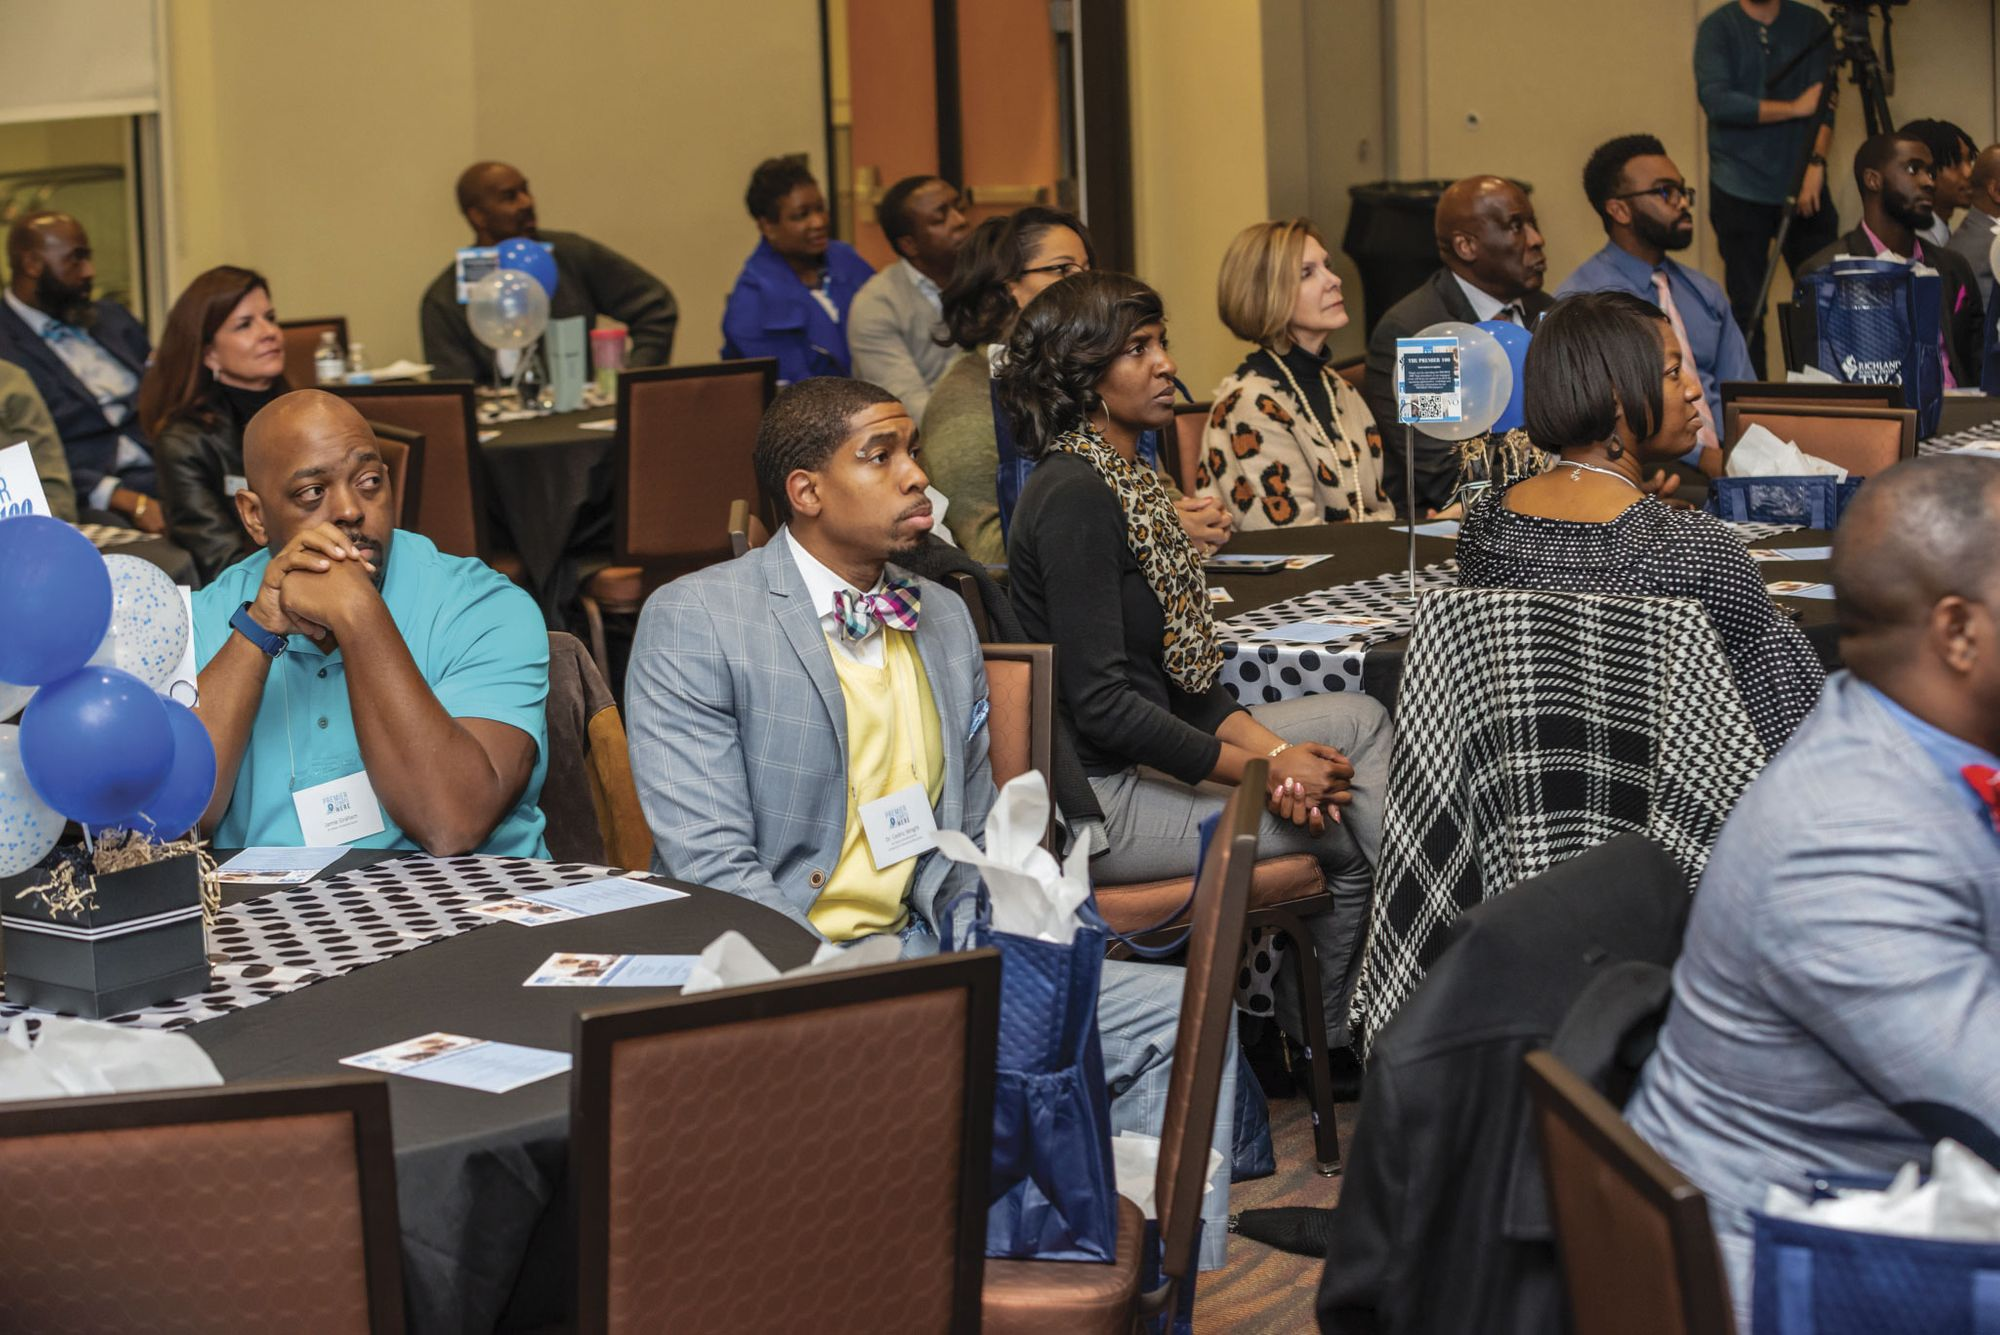 Image: A community meeting in Richland County School District Two